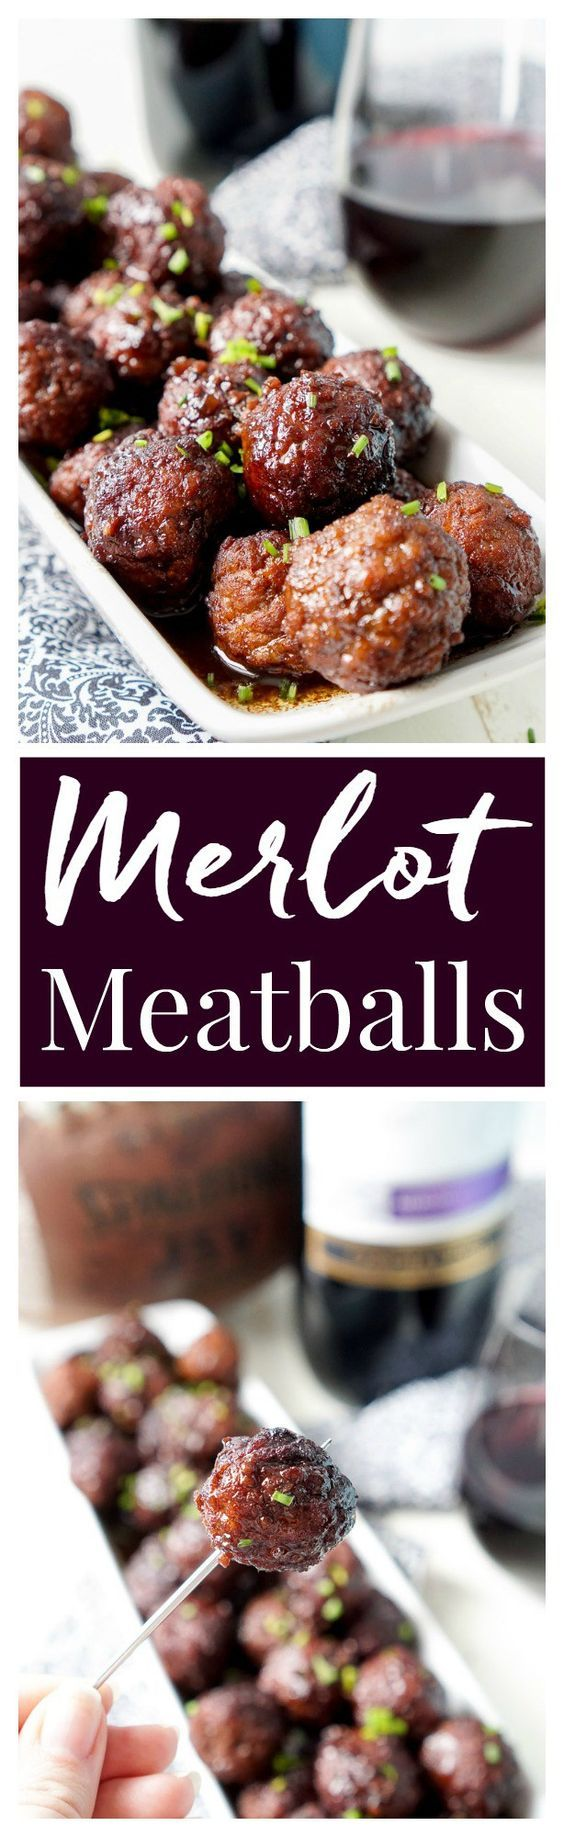 Merlot Meatballs. Delicious and fun for a wine-themed birthday party or dinner party.